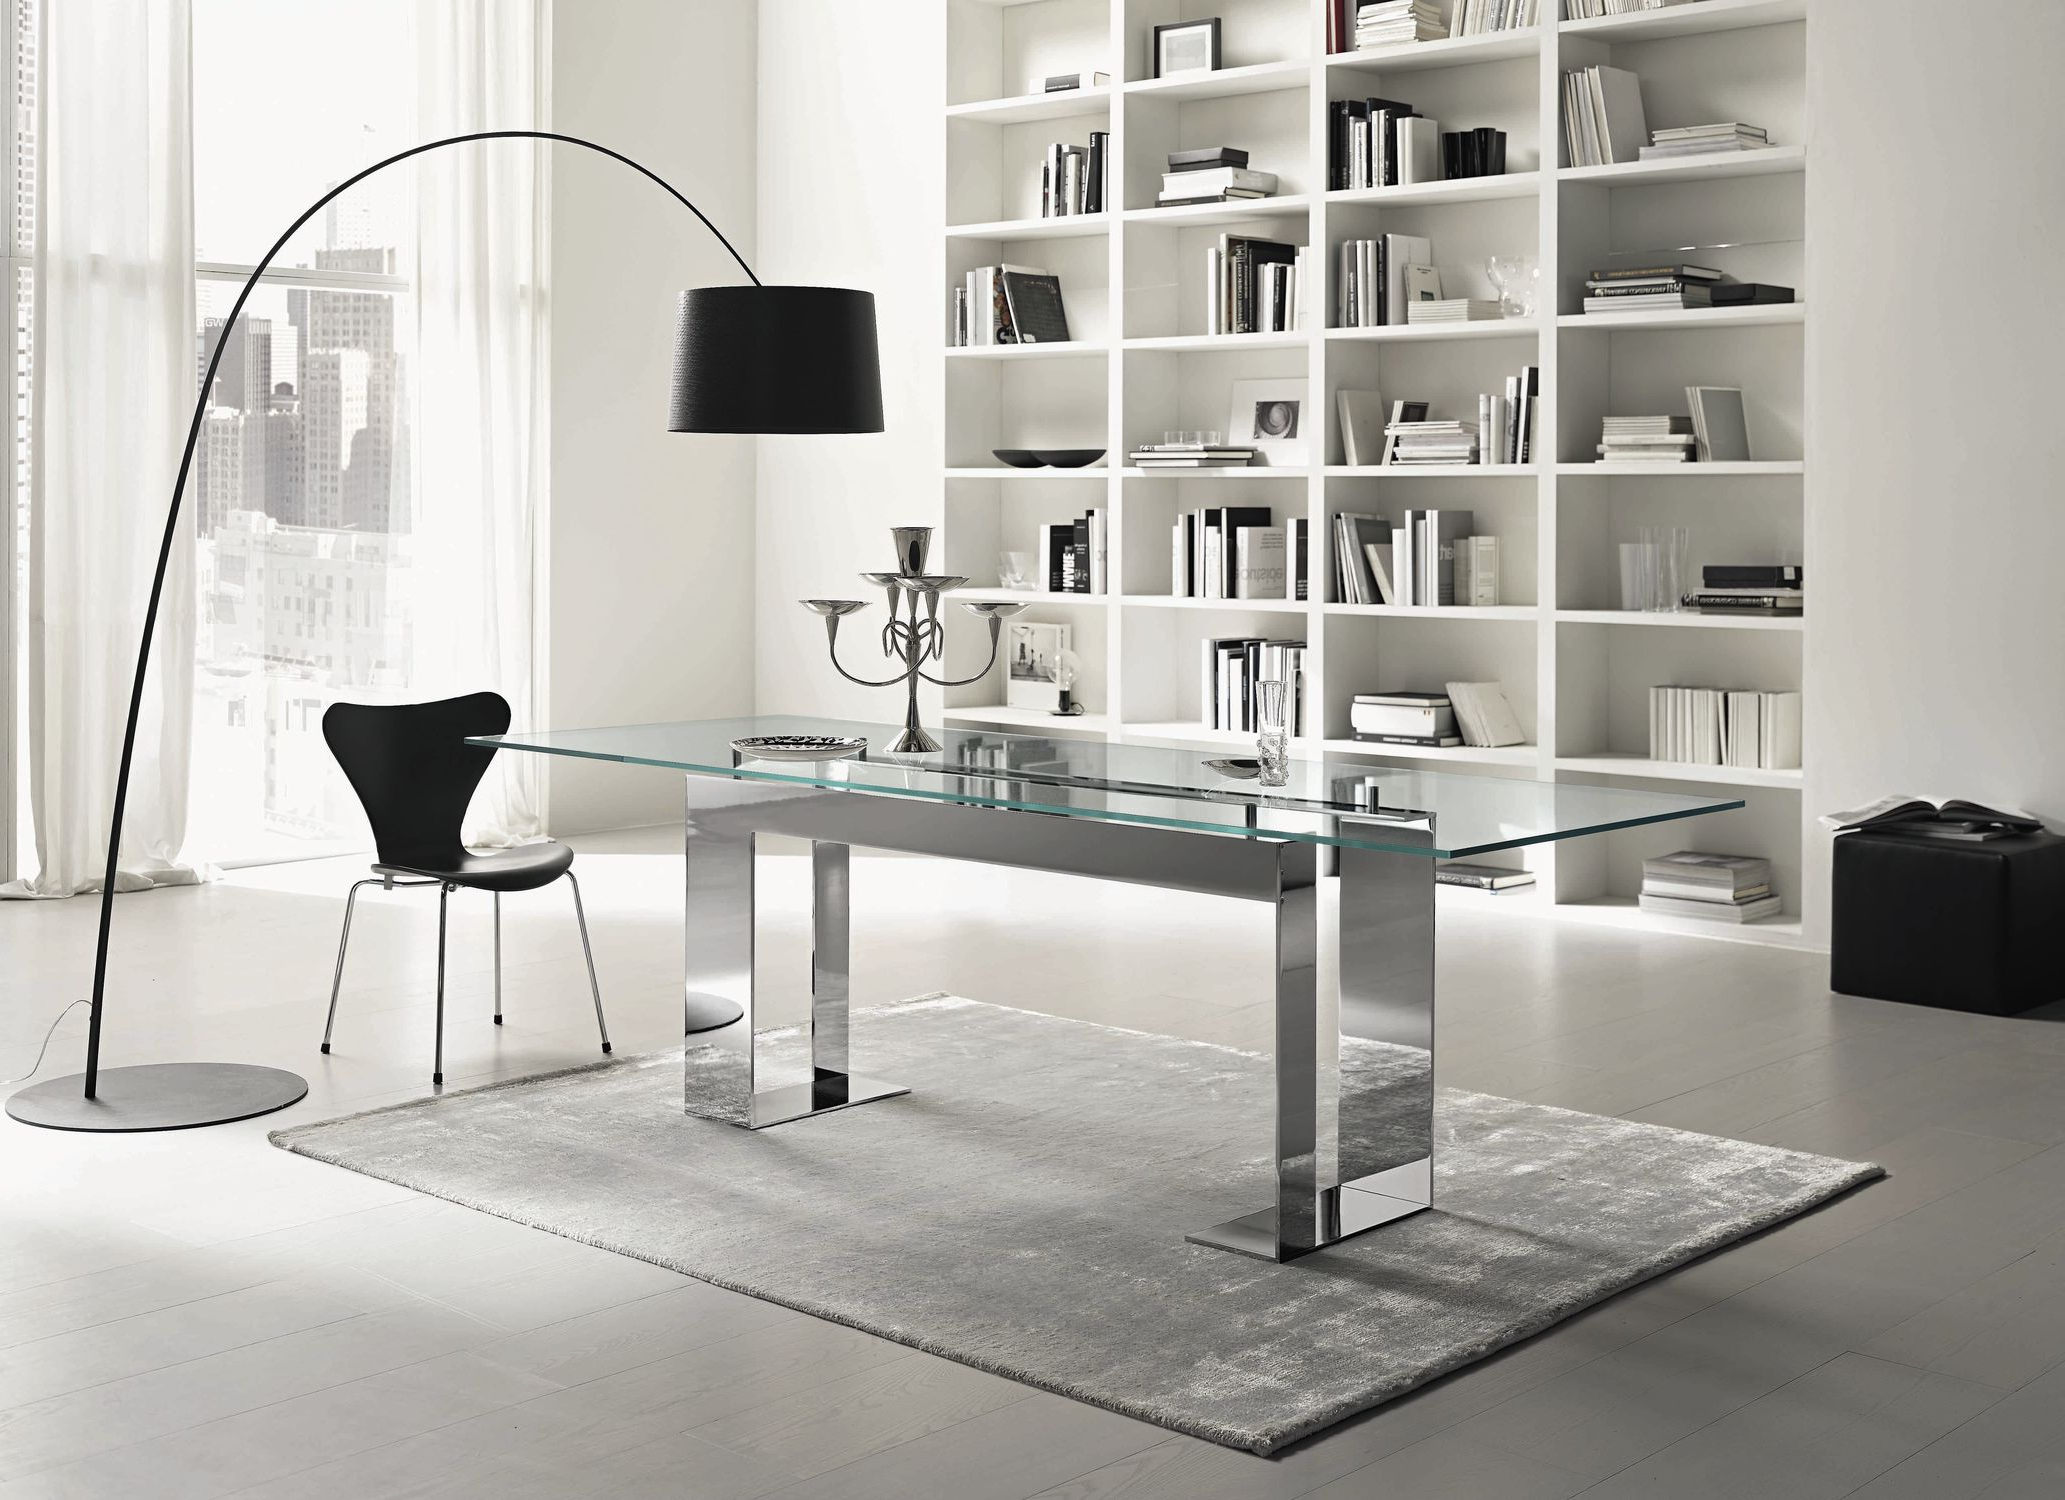 Preferred Long Dining Tables With Polished Black Stainless Steel Base Intended For Contemporary Table / Chromed Metal / Chromed Metal Base (View 7 of 30)